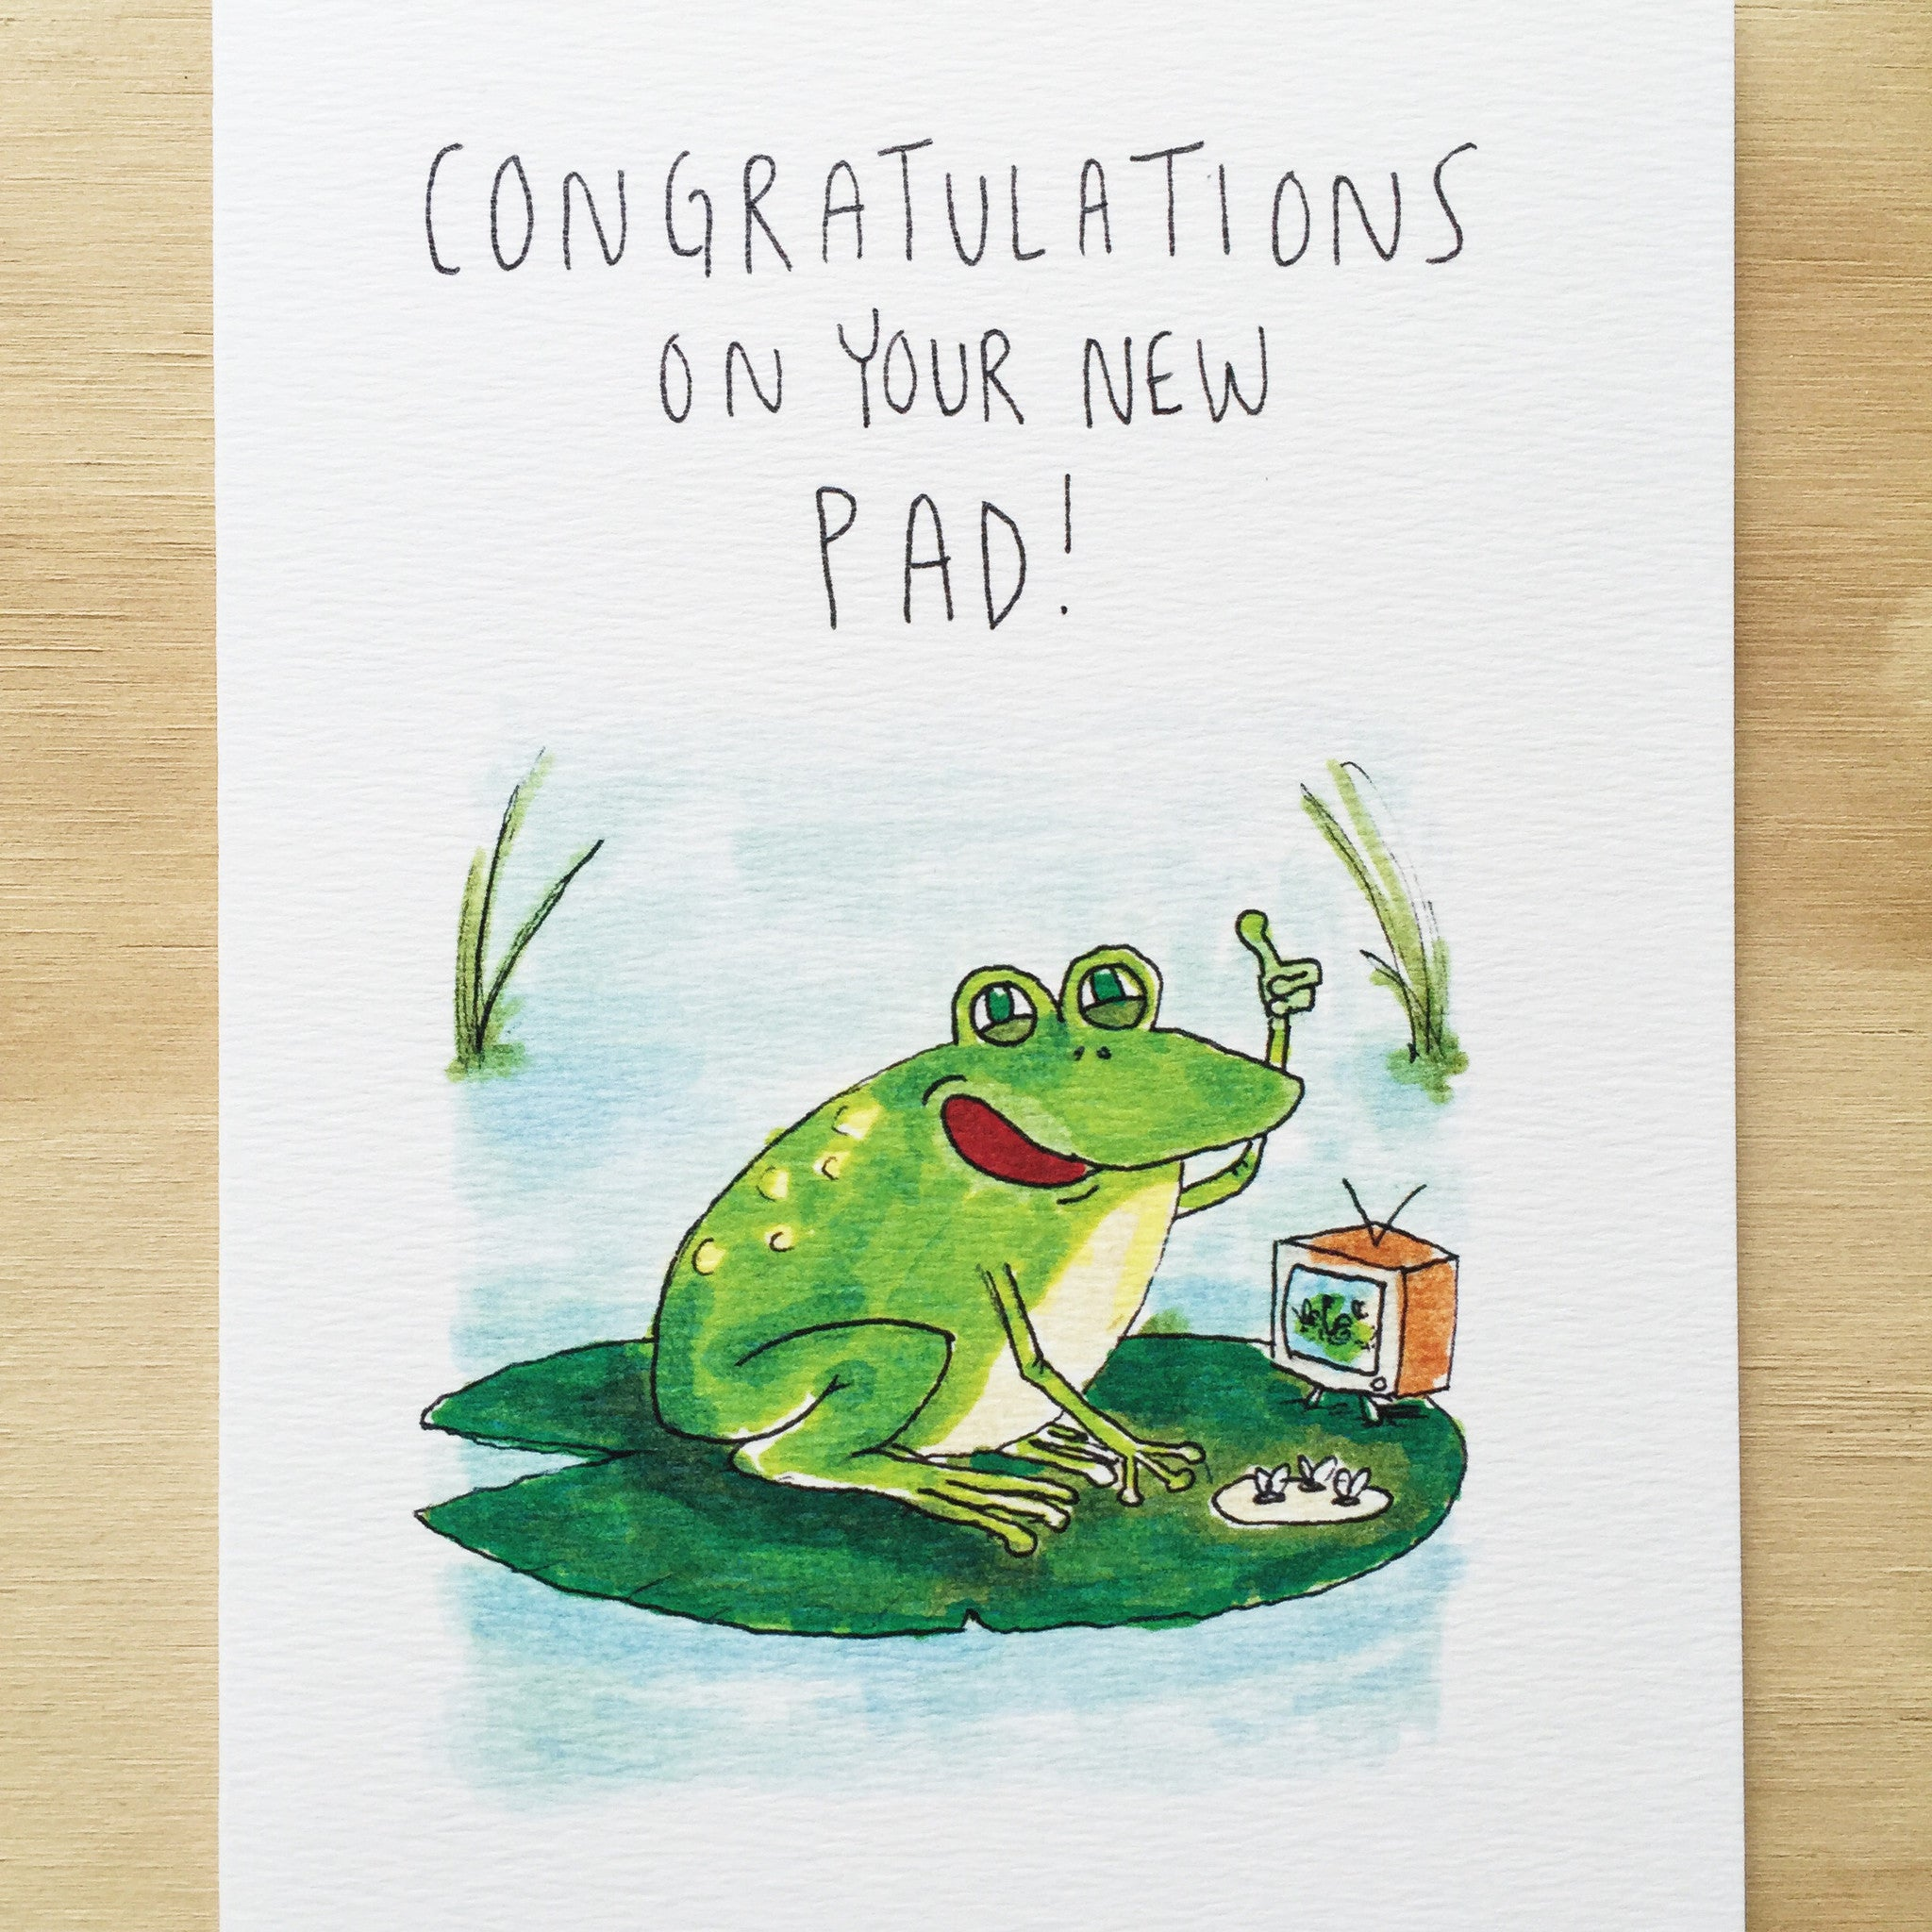 Congratulations On Your New Pad - Well Drawn